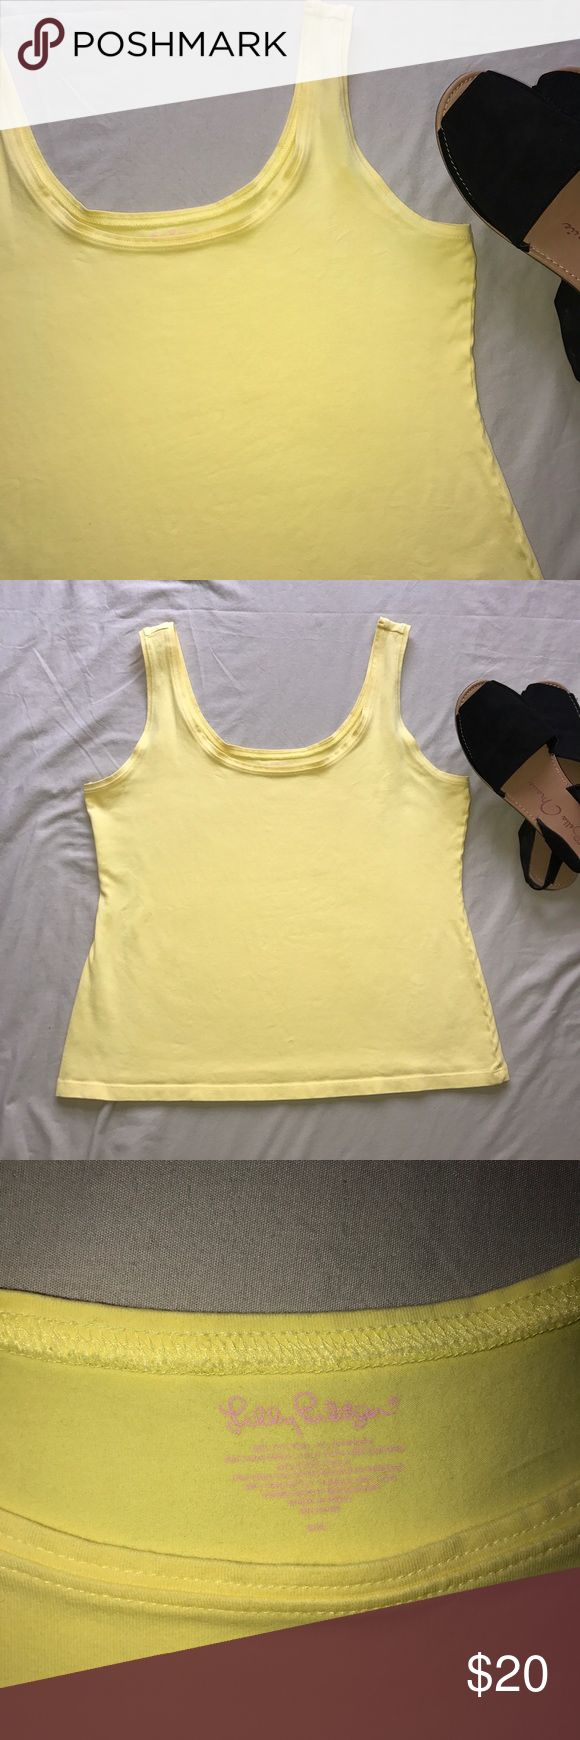 Lilly Pulitzer Yellow  Tank Top Size Large Lilly Pulitzer Yellow Tank top   Form fitting and perfect for summer  In great used condition with no visible signs of wear or tear (see pictures of item)   Comes from a smoke free home   ✨Offers Welcome✨ 💕Bundles = 15% off and a free gift! 💕 Sorry no trades Lilly Pulitzer Tops Tank Tops